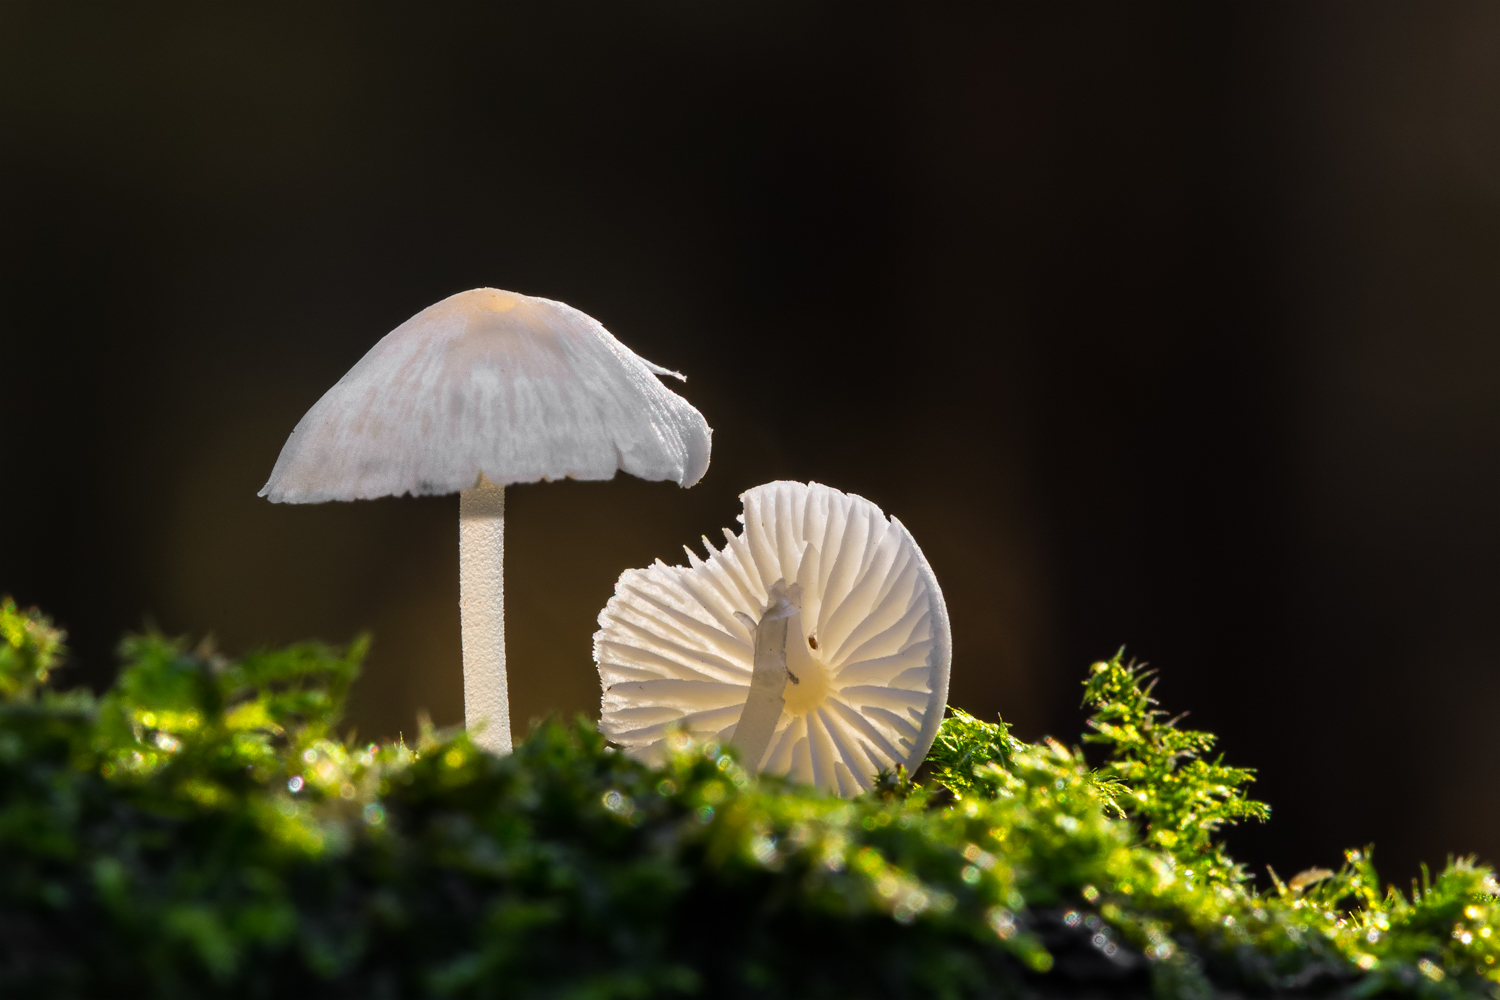 Photo 2: These Milking Bonnet fungi have been photographed using virtually the same technique as in the previous photo. The difference in this second shot is that I haven't angled the lens towards the sun to give a darker, smoother, flare-free background